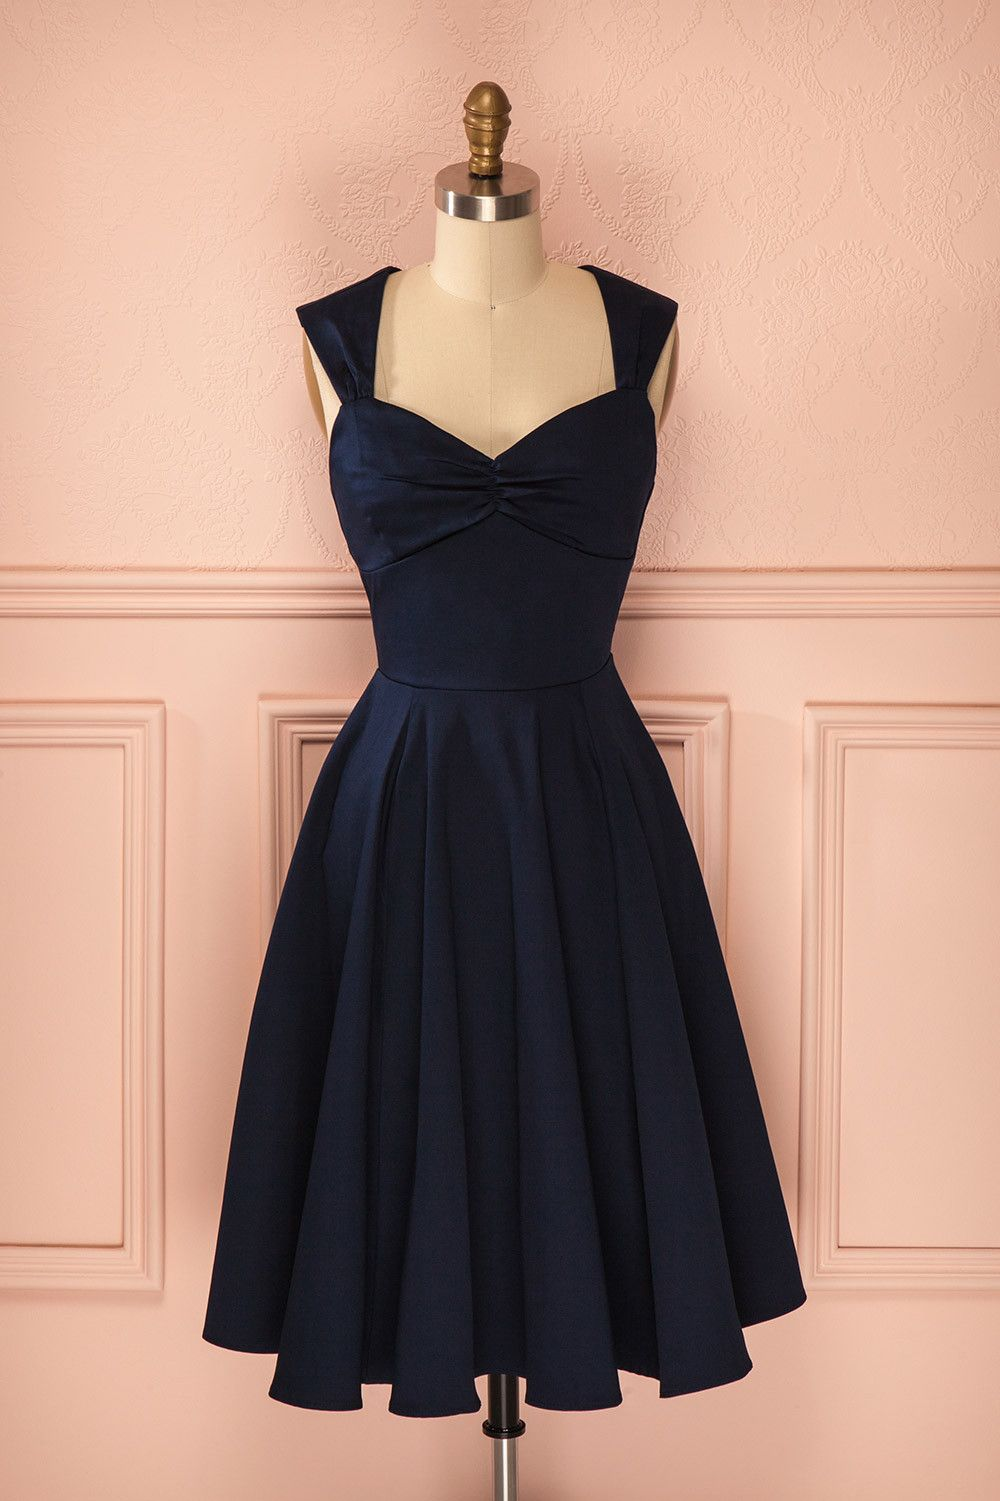 Short Homecoming Dress,Navy Blue Homecoming Dress,Homecoming Dresses ...